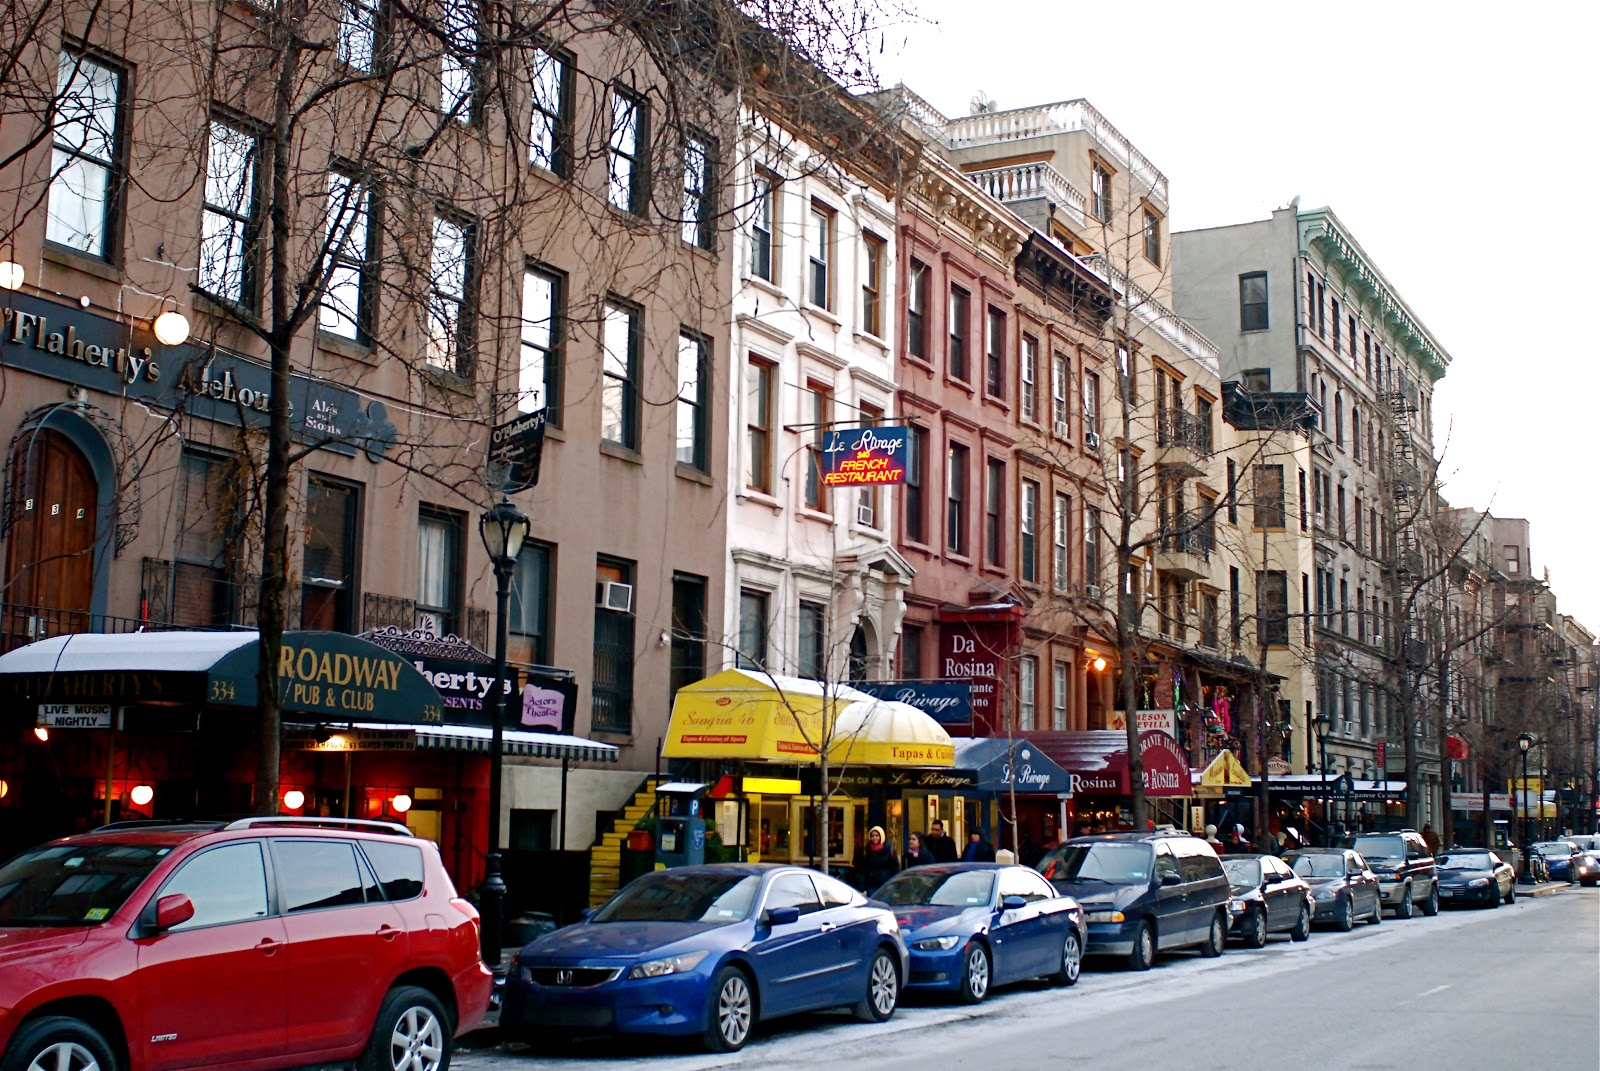 NYC  NYC: Hell's Kitchen and Restaurant Row